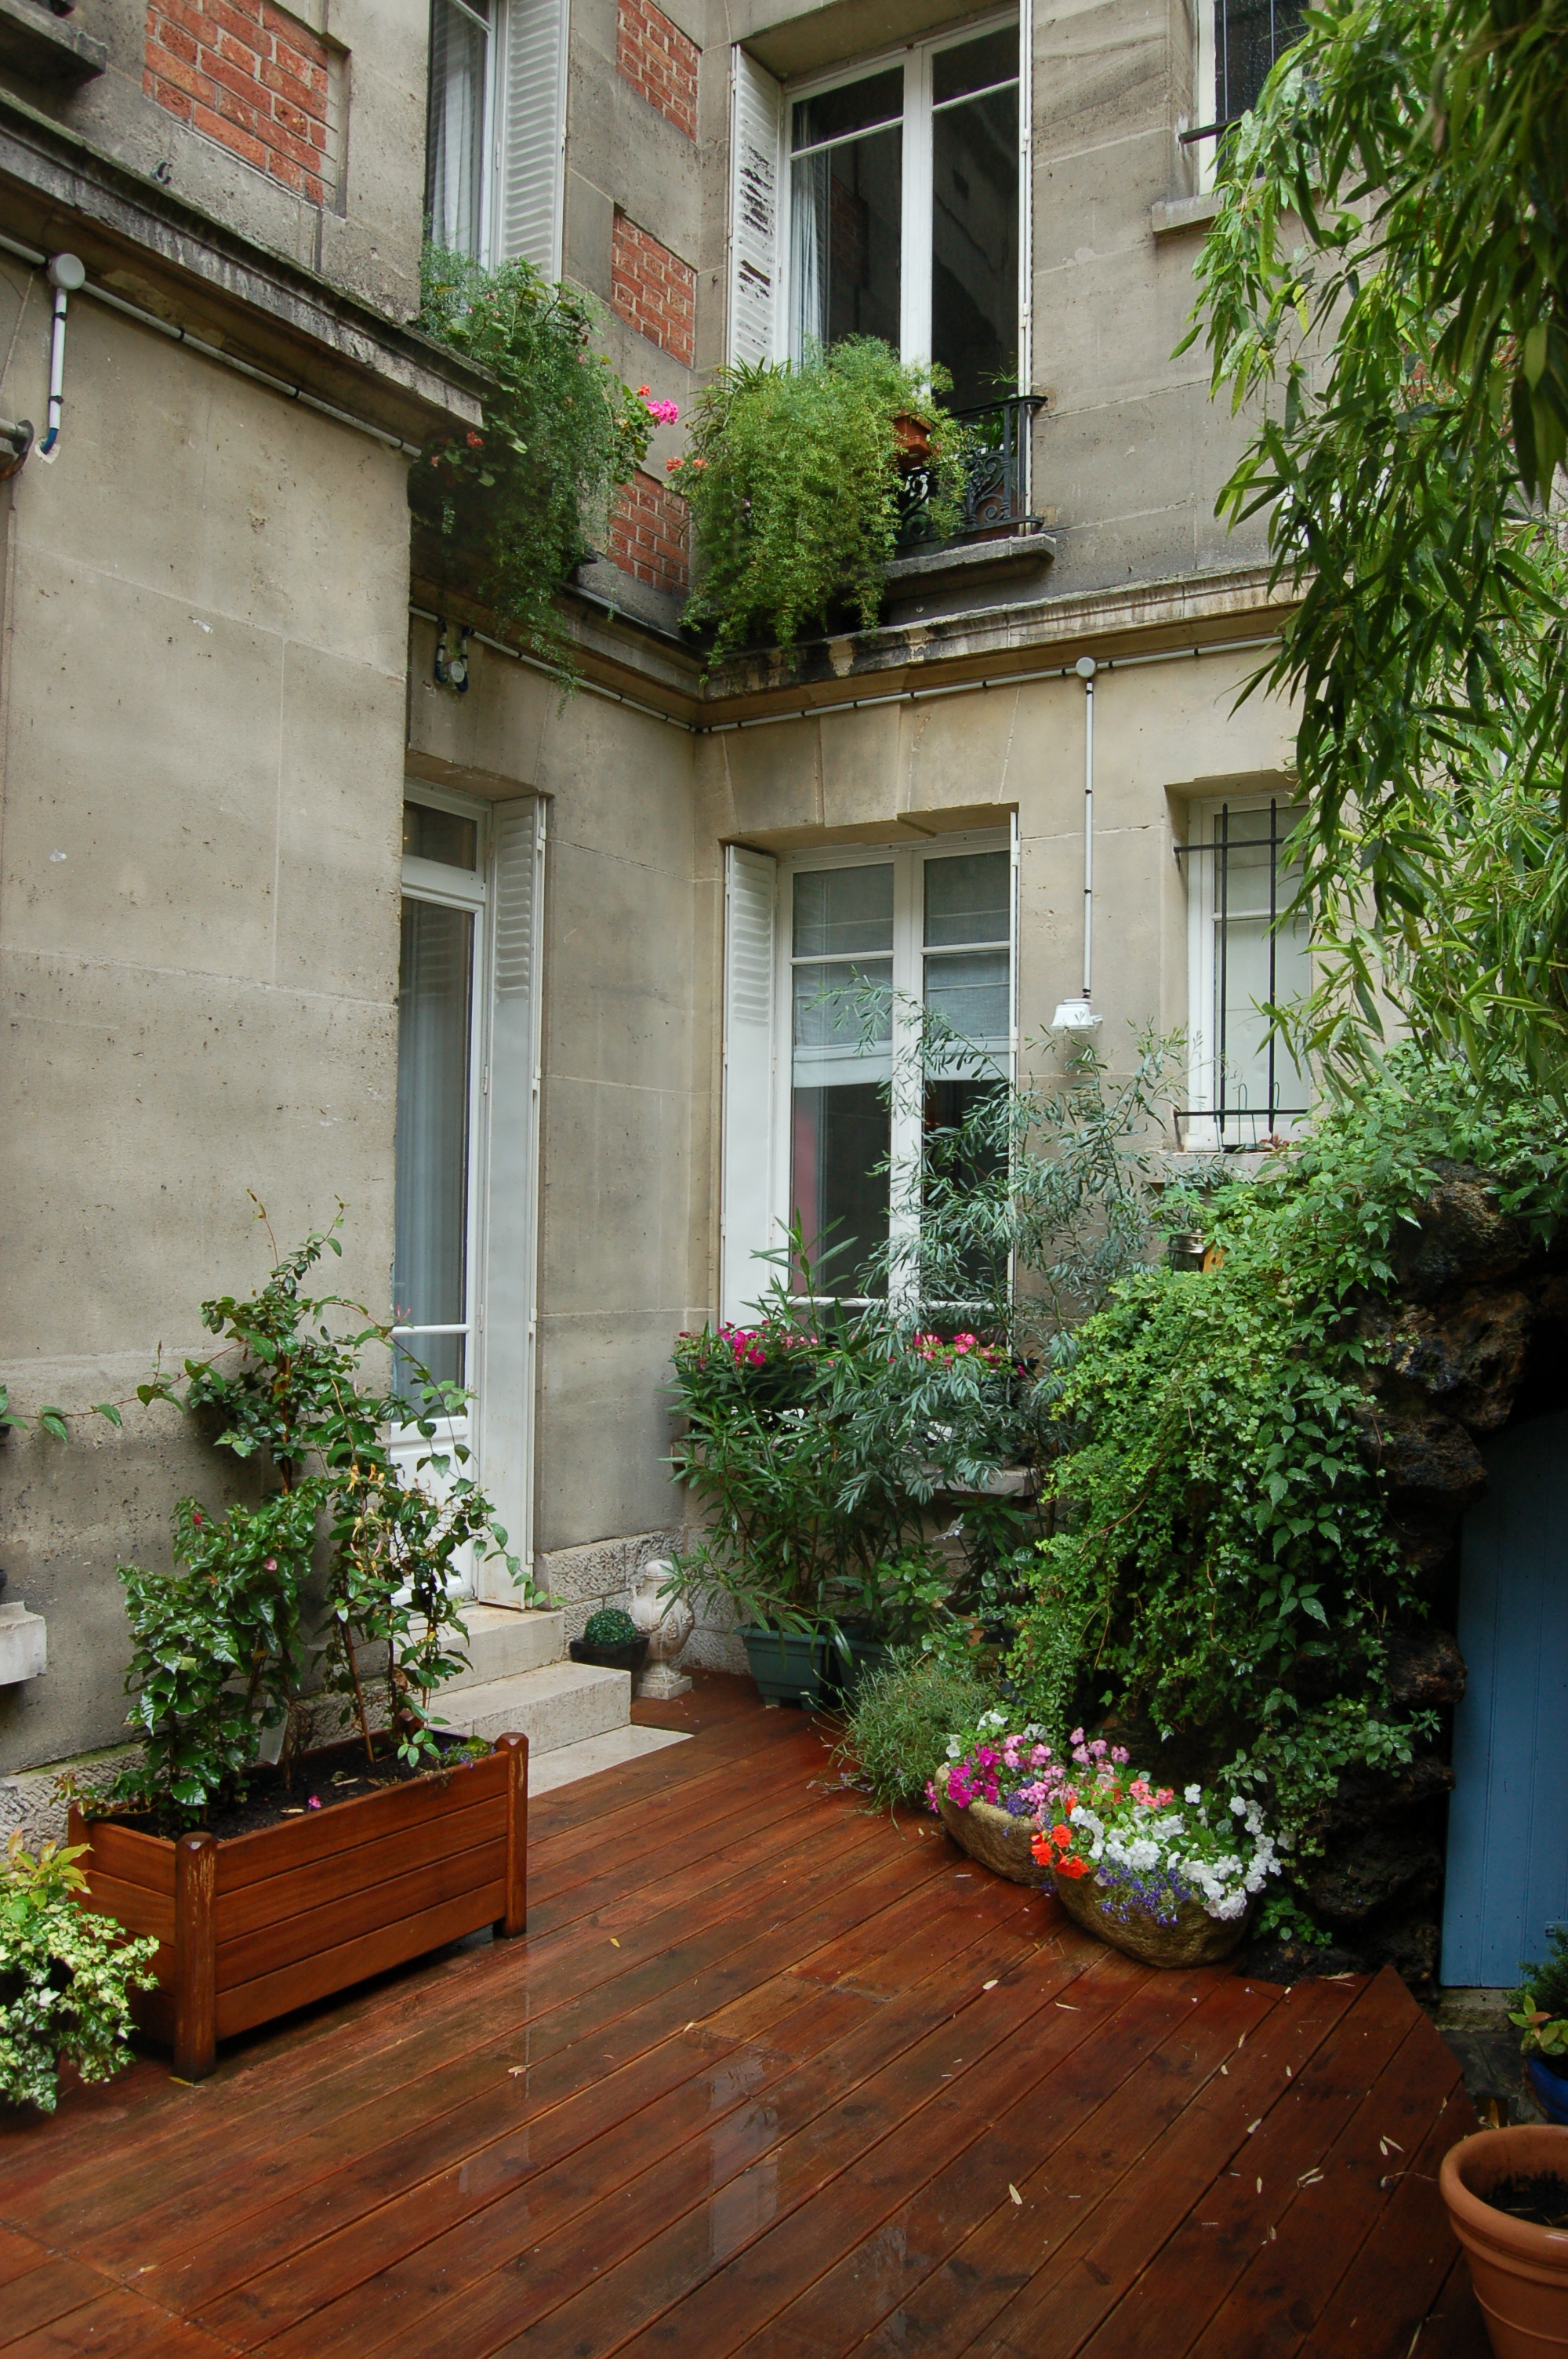 Paysagiste paris 17 id e inspirante pour la conception de la maison for Paysagistes paris